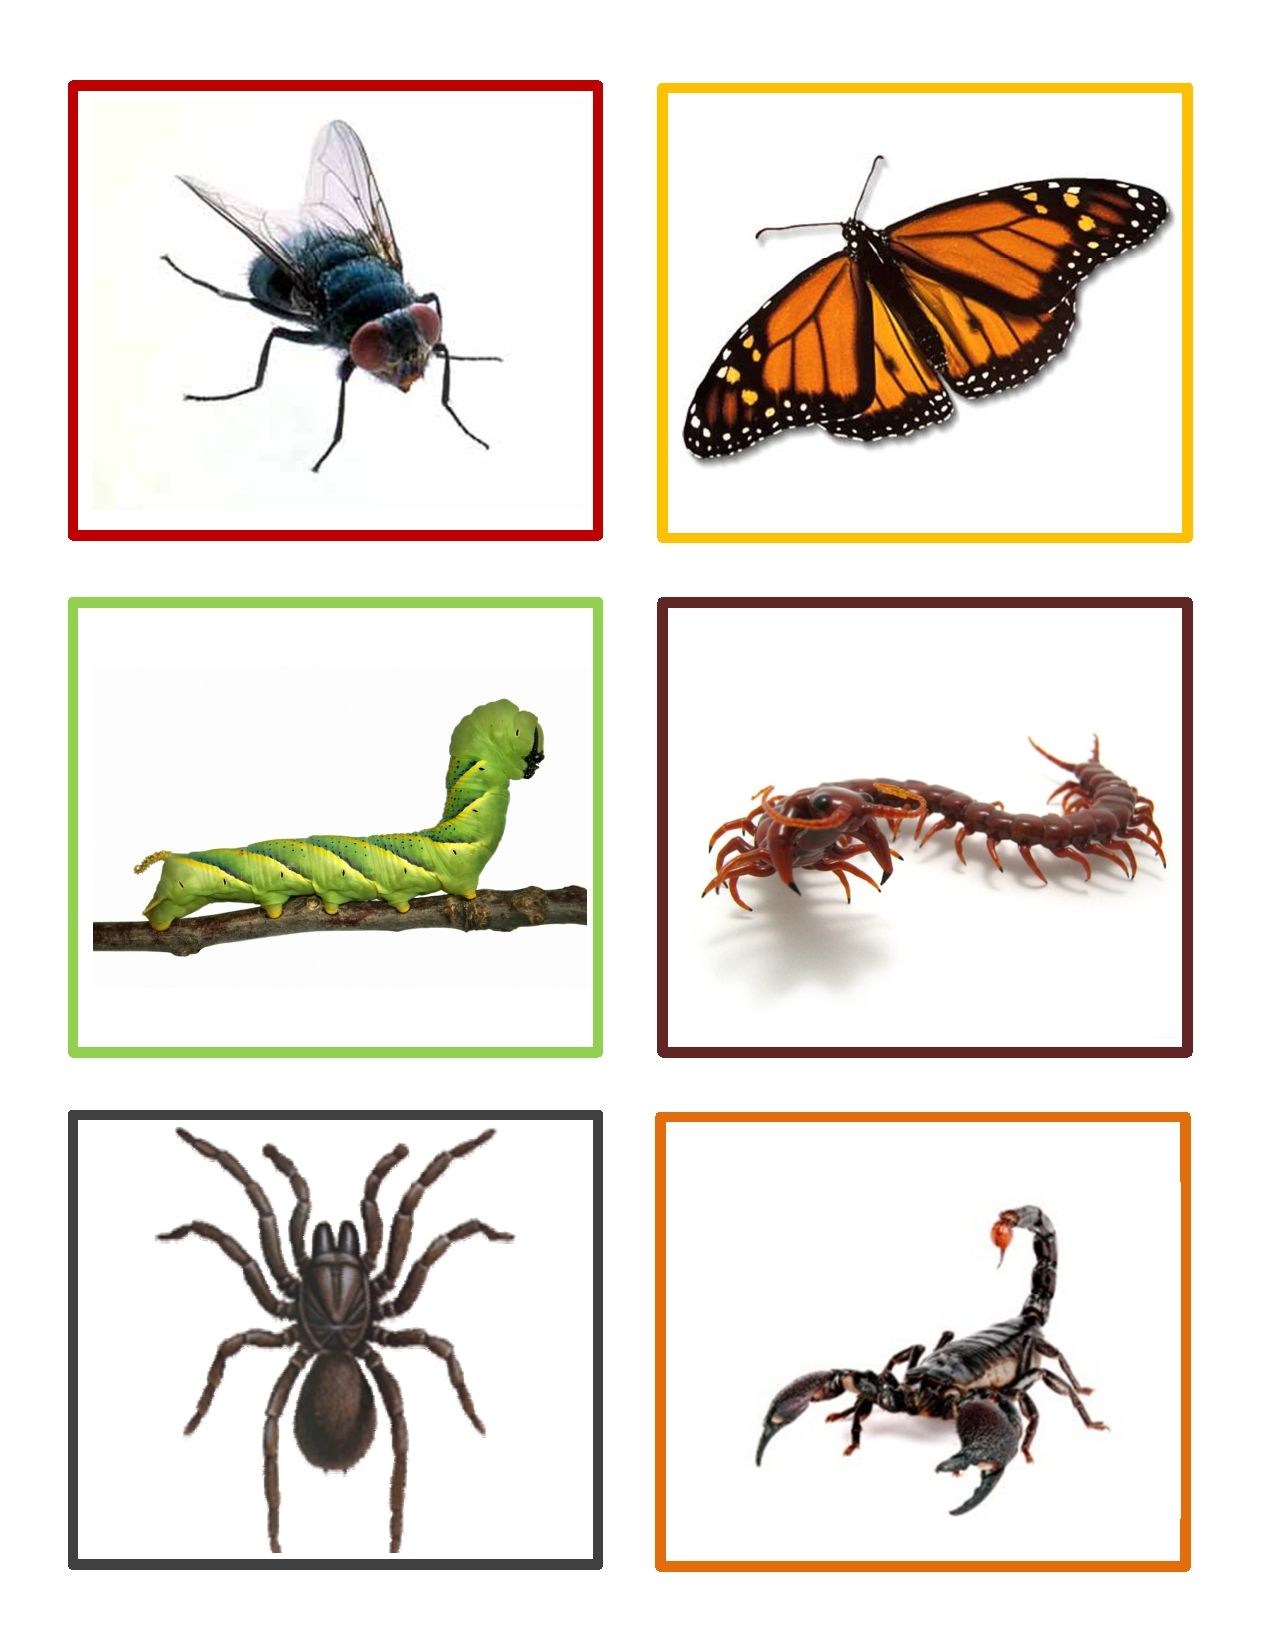 Insect Memory Game Is A Fun Activity For Preschoolers To Learn About Insects And Develop Memory